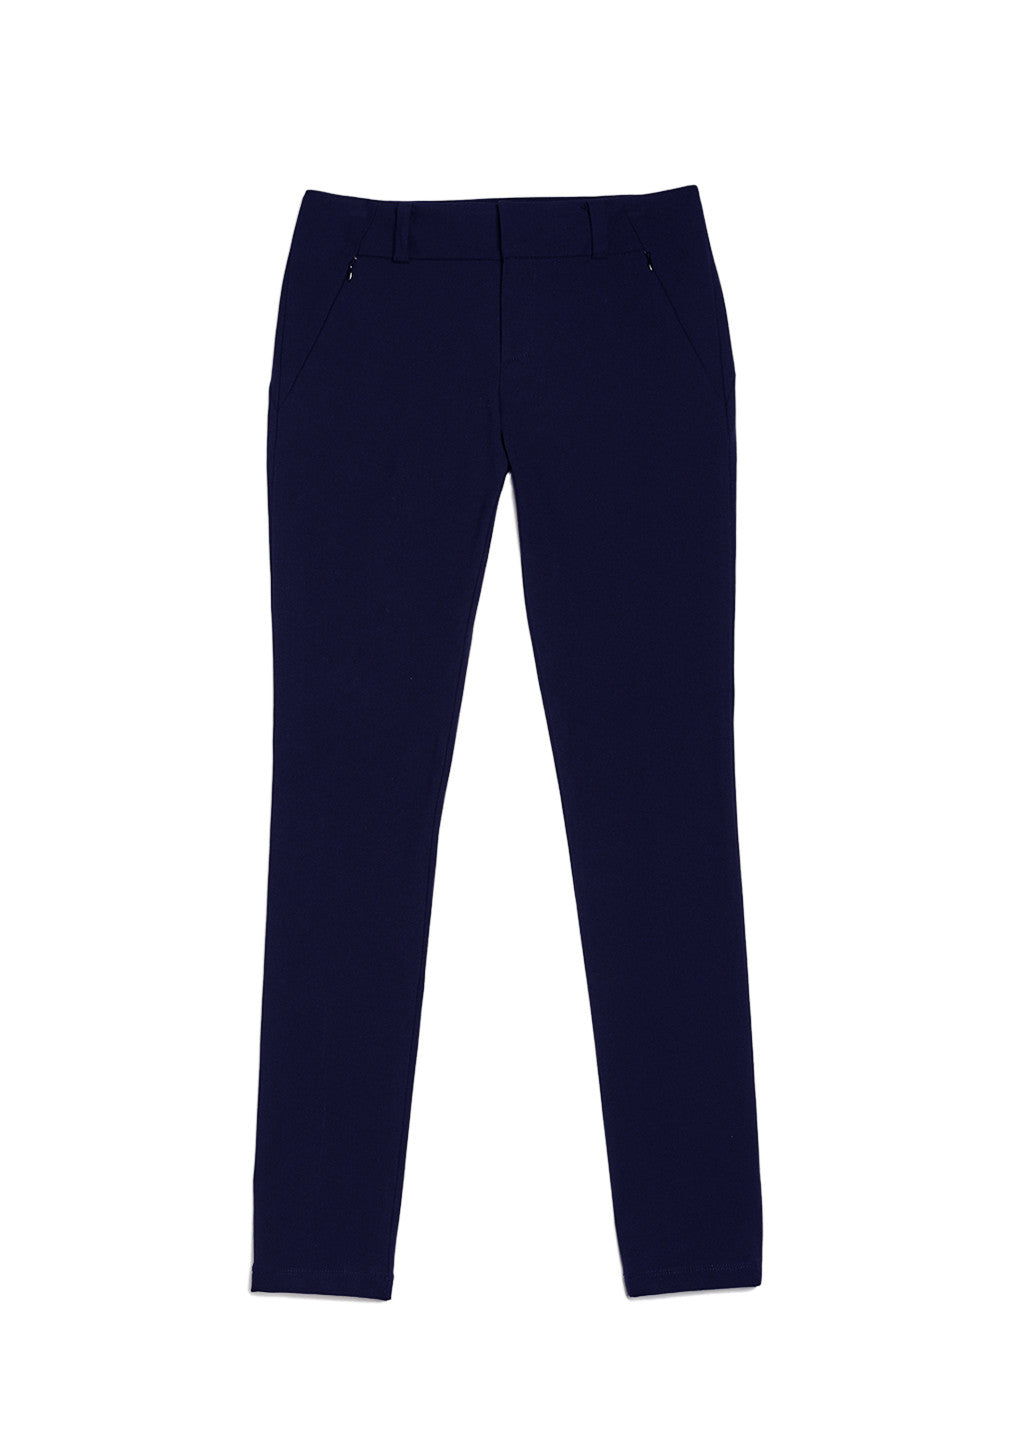 24/7 Pants Midnight Navy